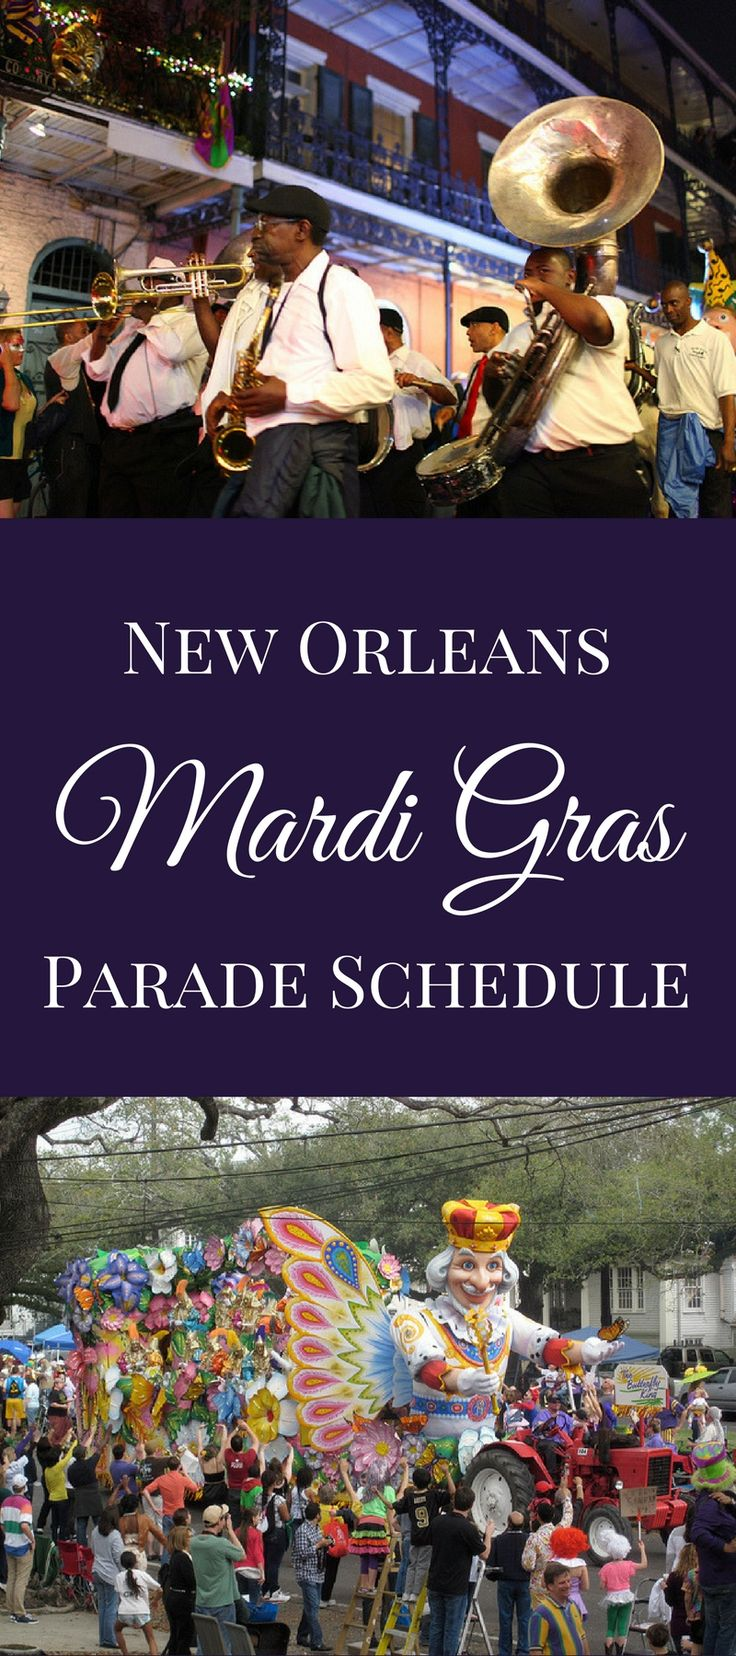 We've put together a Mardi Gras parade schedule for the whole season for parades rolling in Uptown New Orleans and the French Quarter. Take a look!